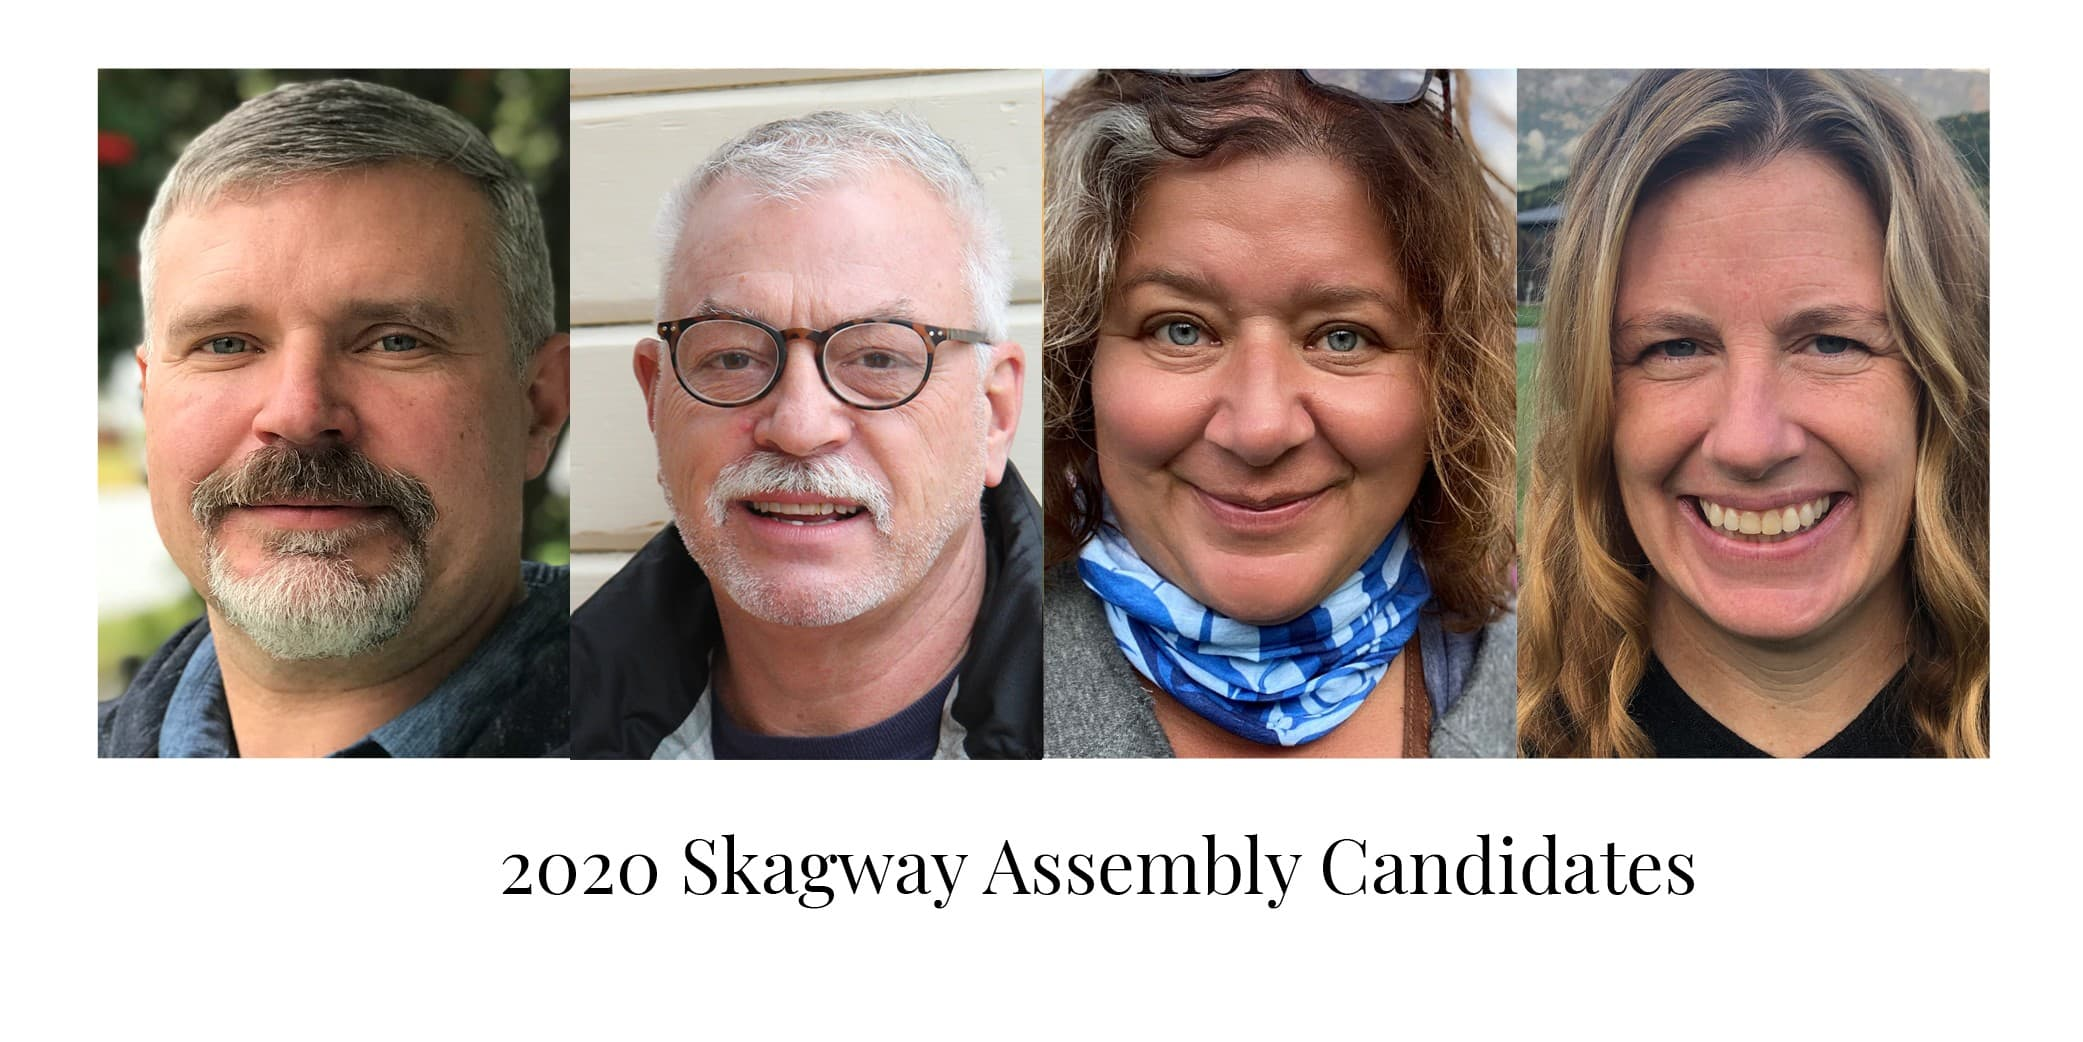 2020 Skagway Assembly Candidates